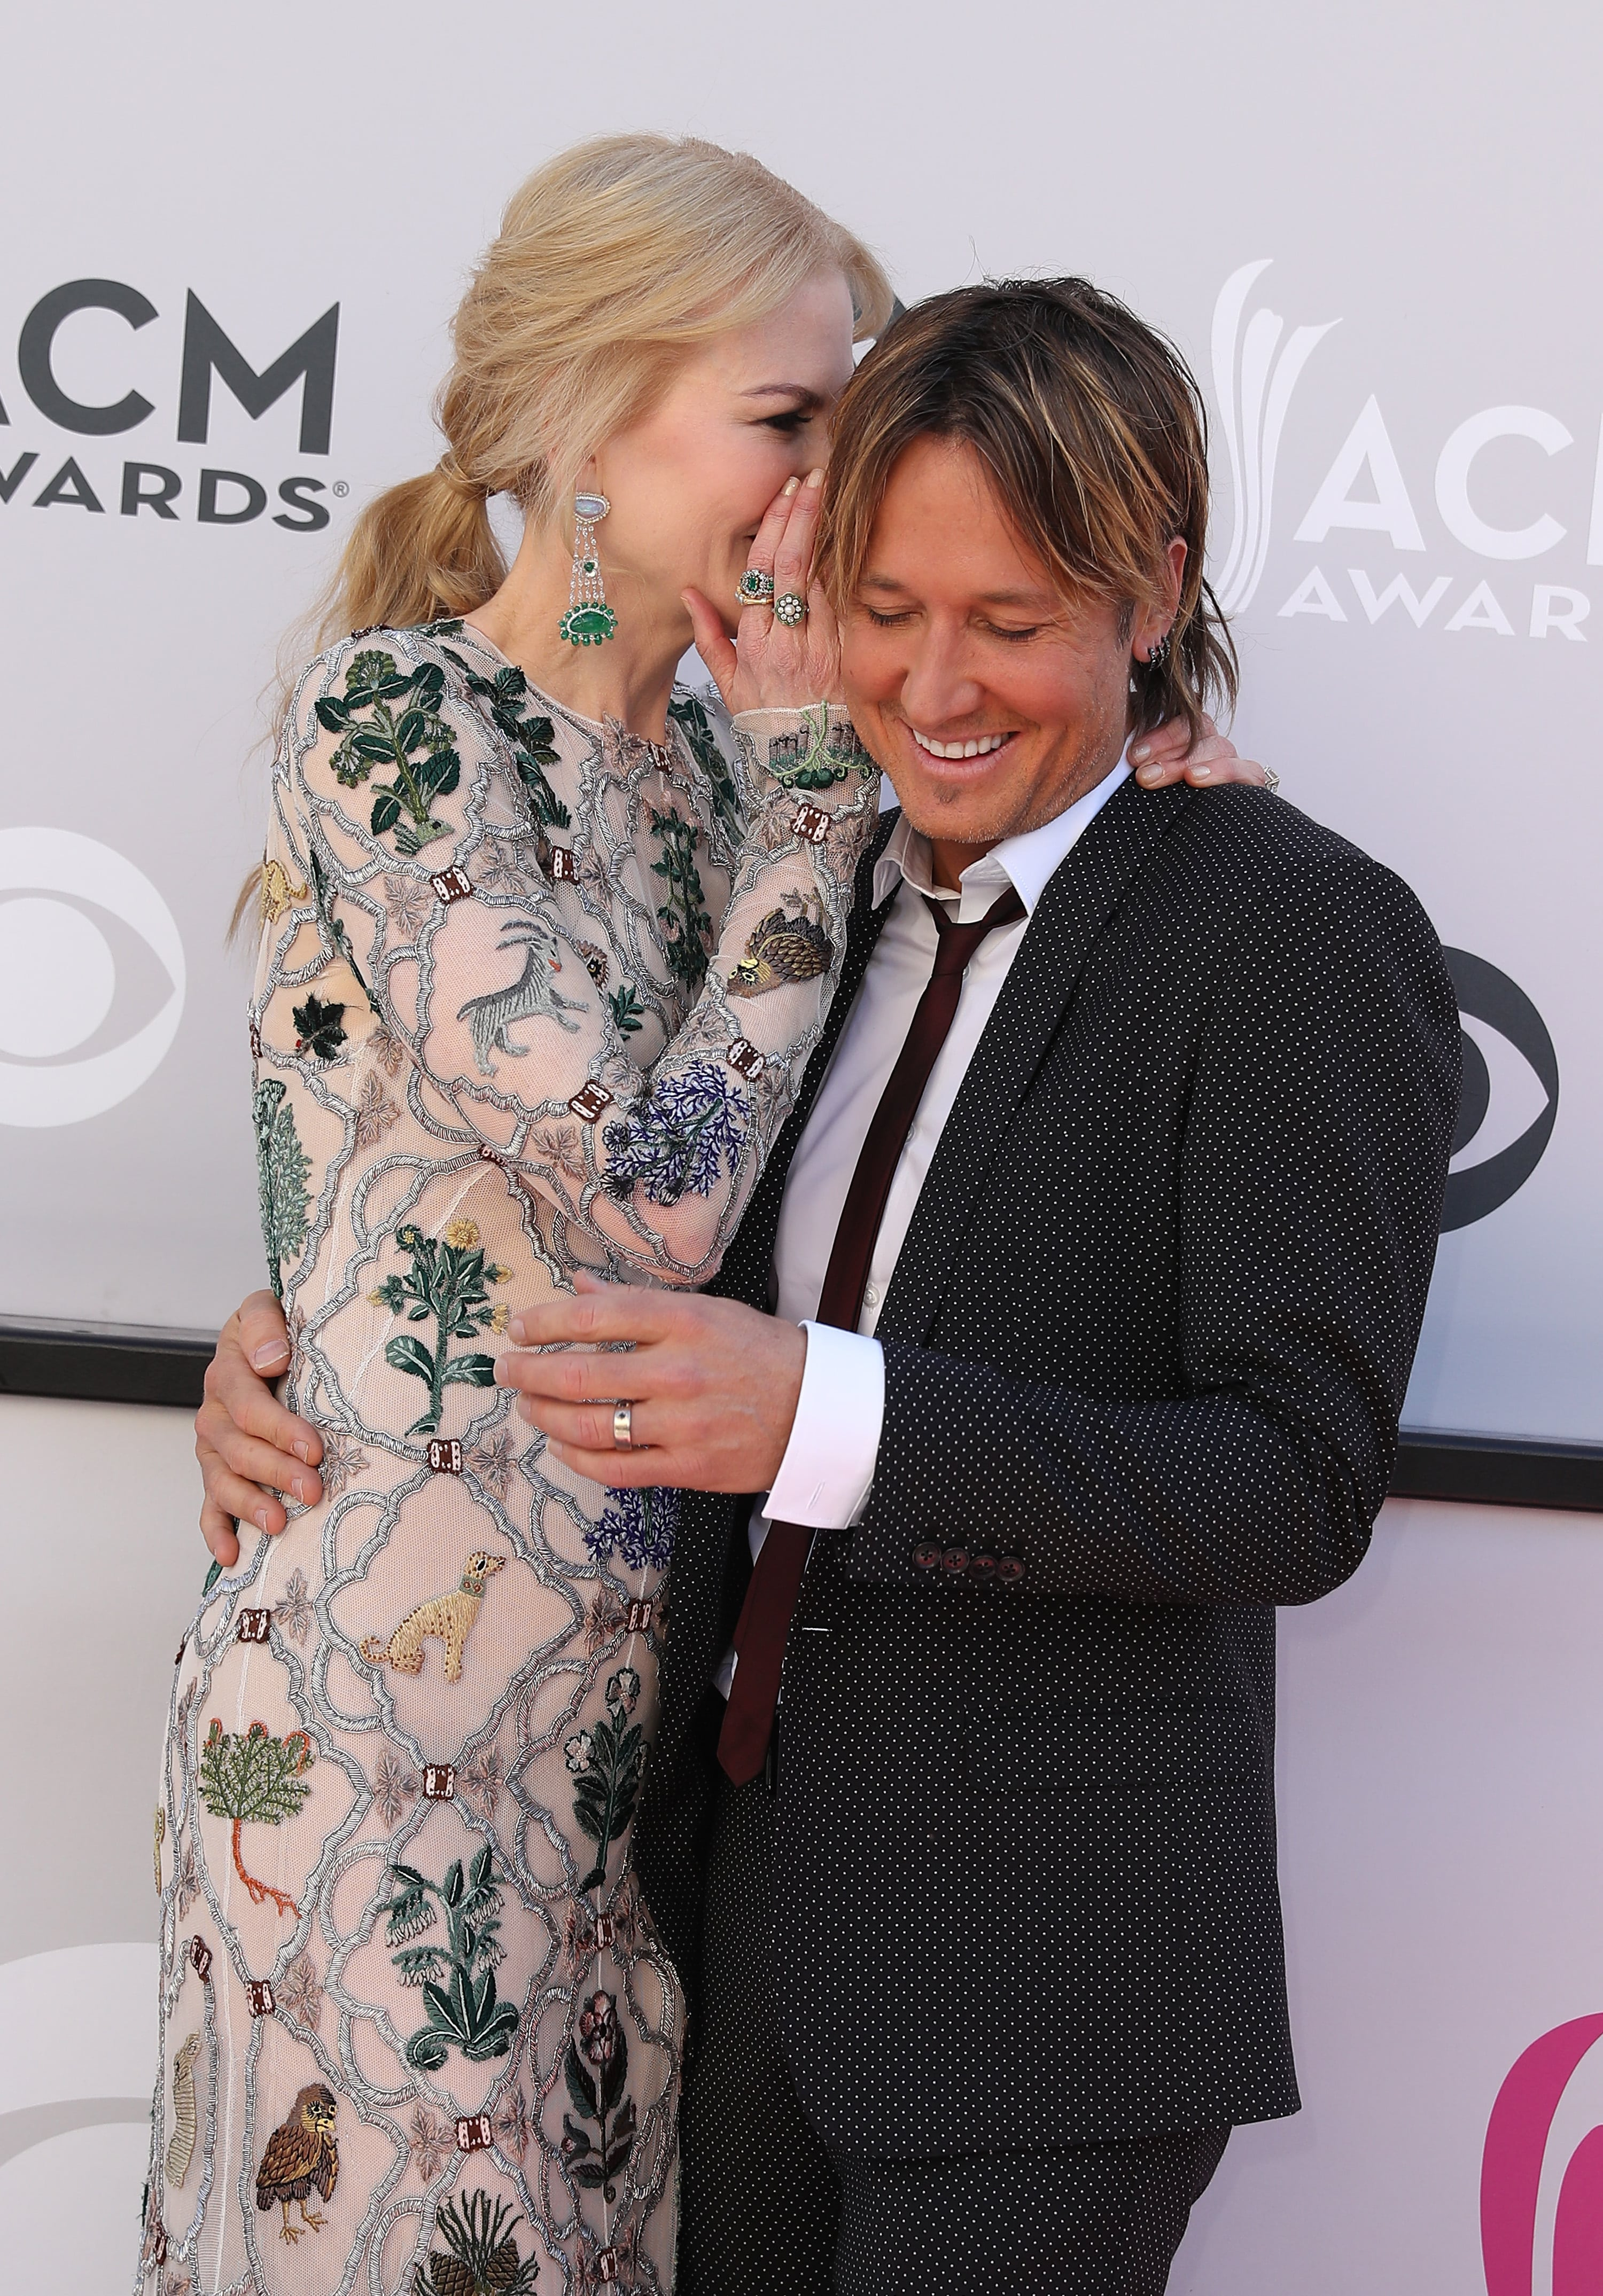 Nicole whispering something funny to Keith at the 2017 Academy of Country Music Awards. (